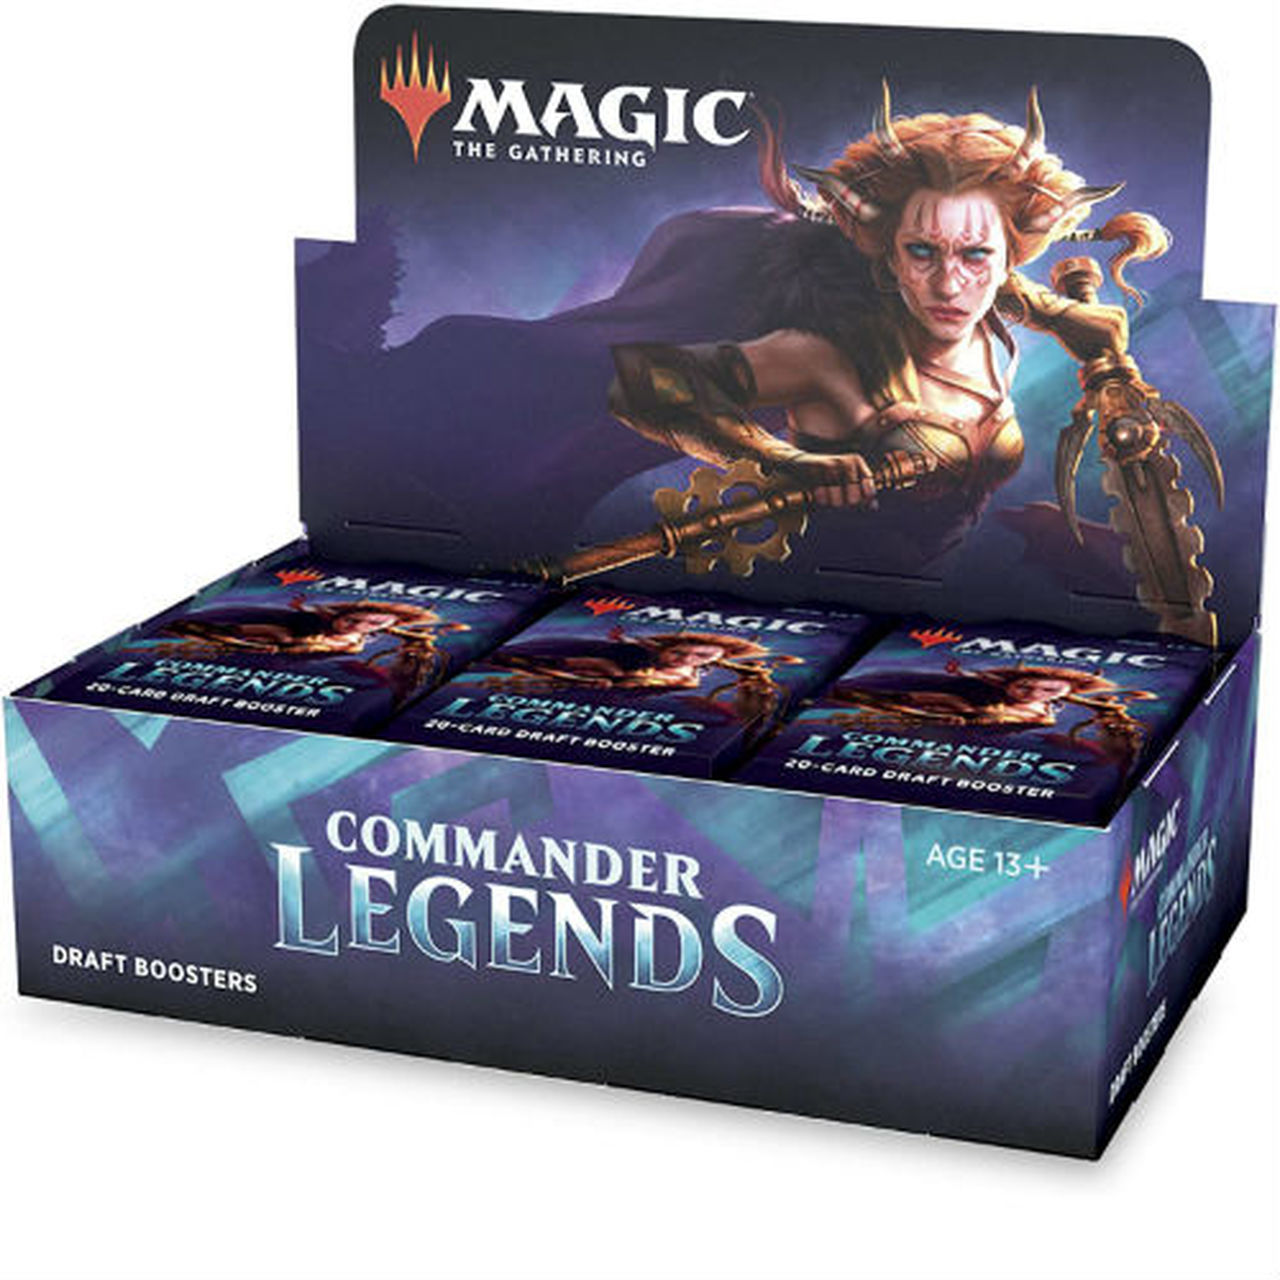 Good Morning Magic Details Mechanic That Almost Made It To Commander Legends